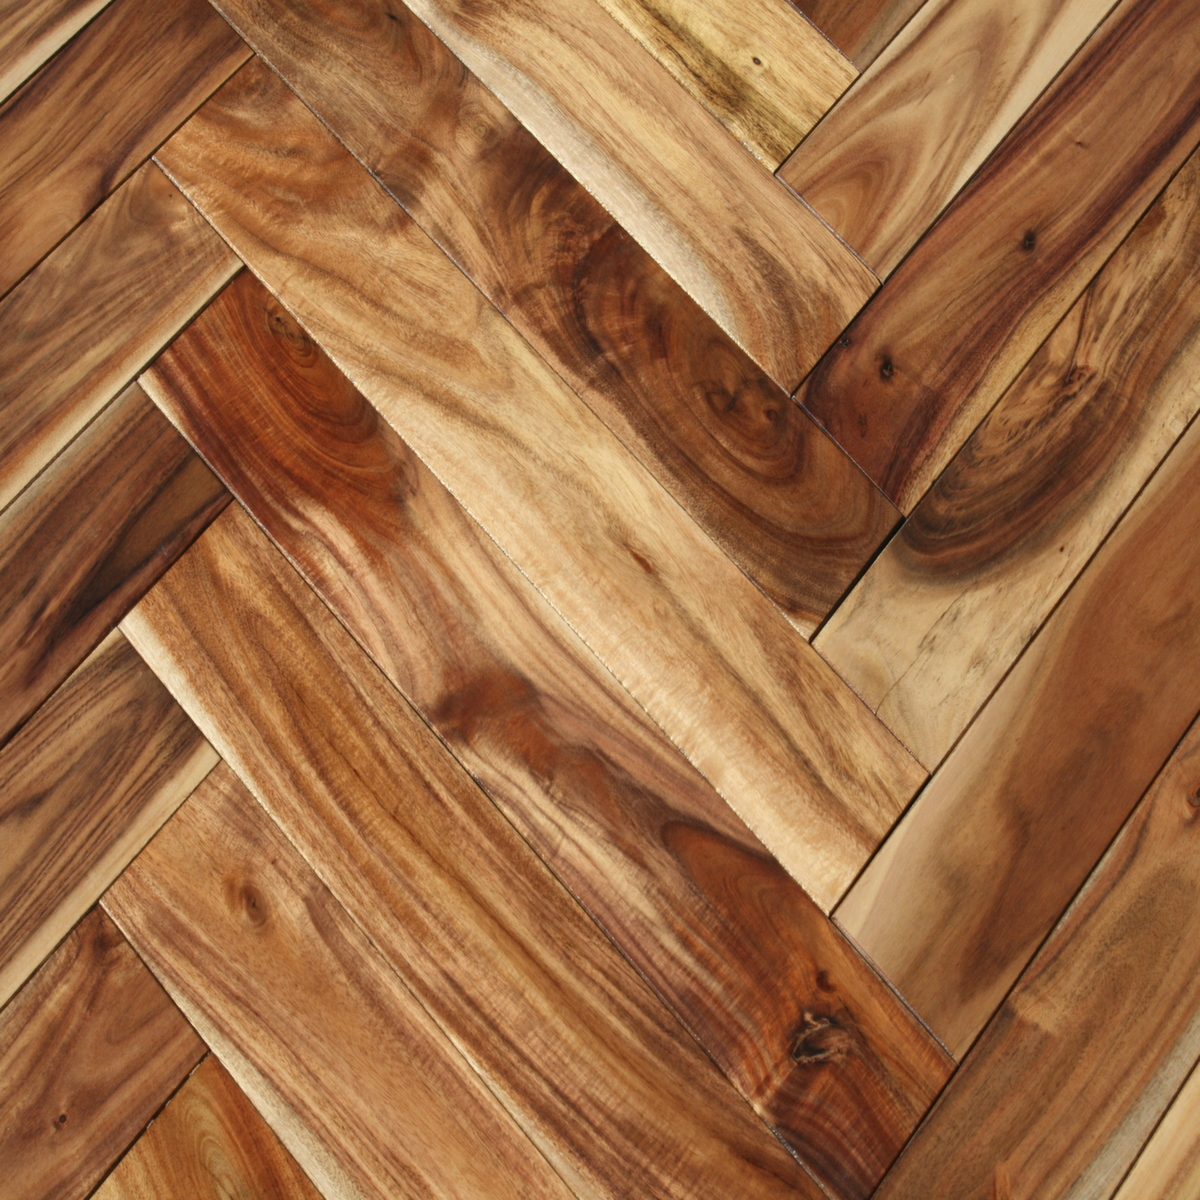 acacia natural herringbone hardwood flooring acacia ForWood Flooring Natural